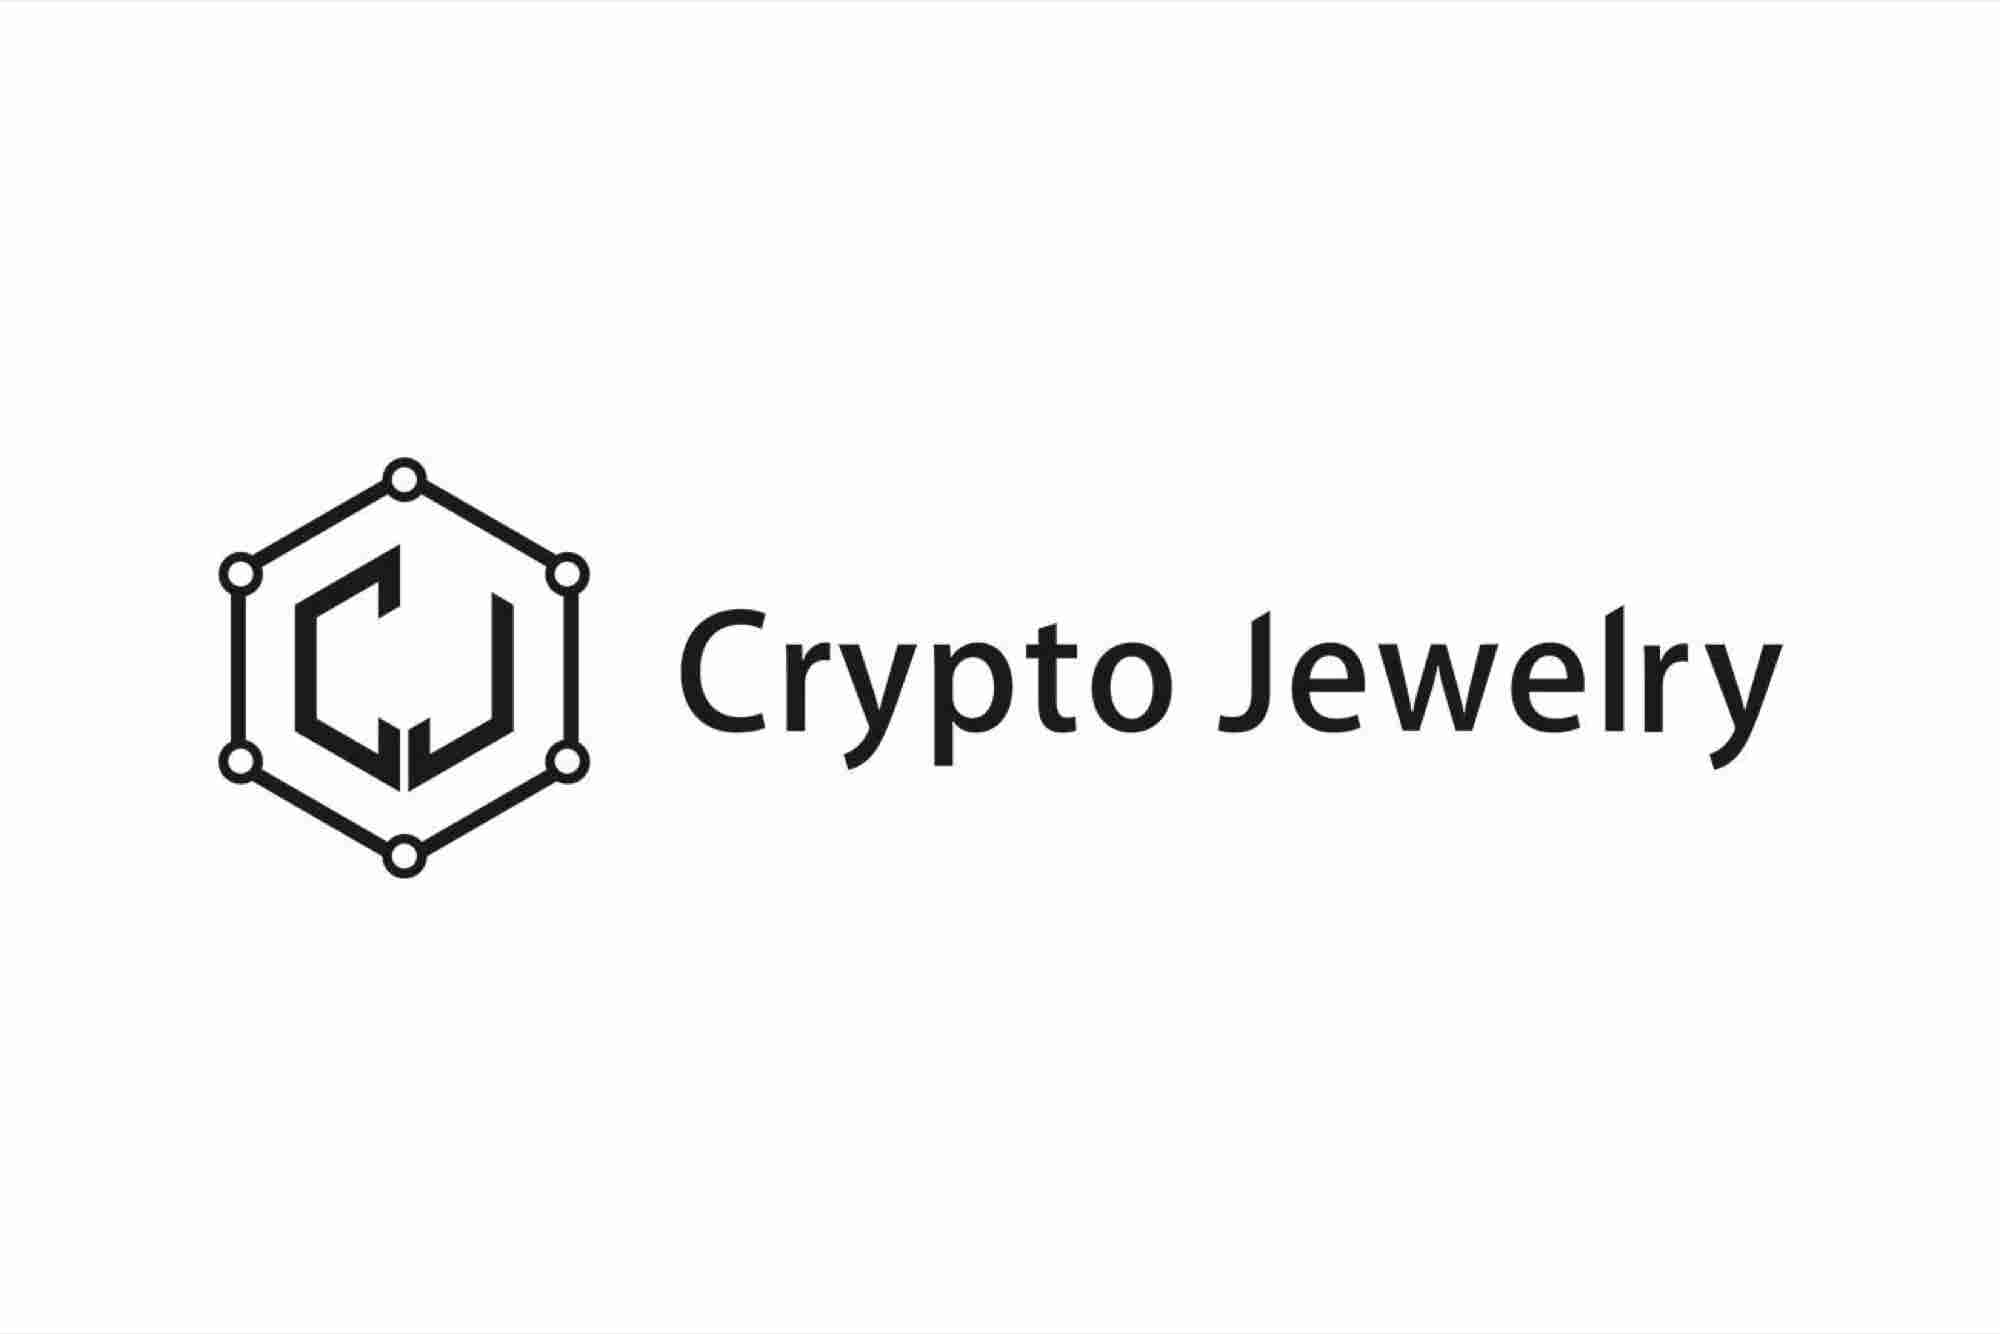 These LA Jewelers Want to Bring A Touch of Class to the Crypto Community